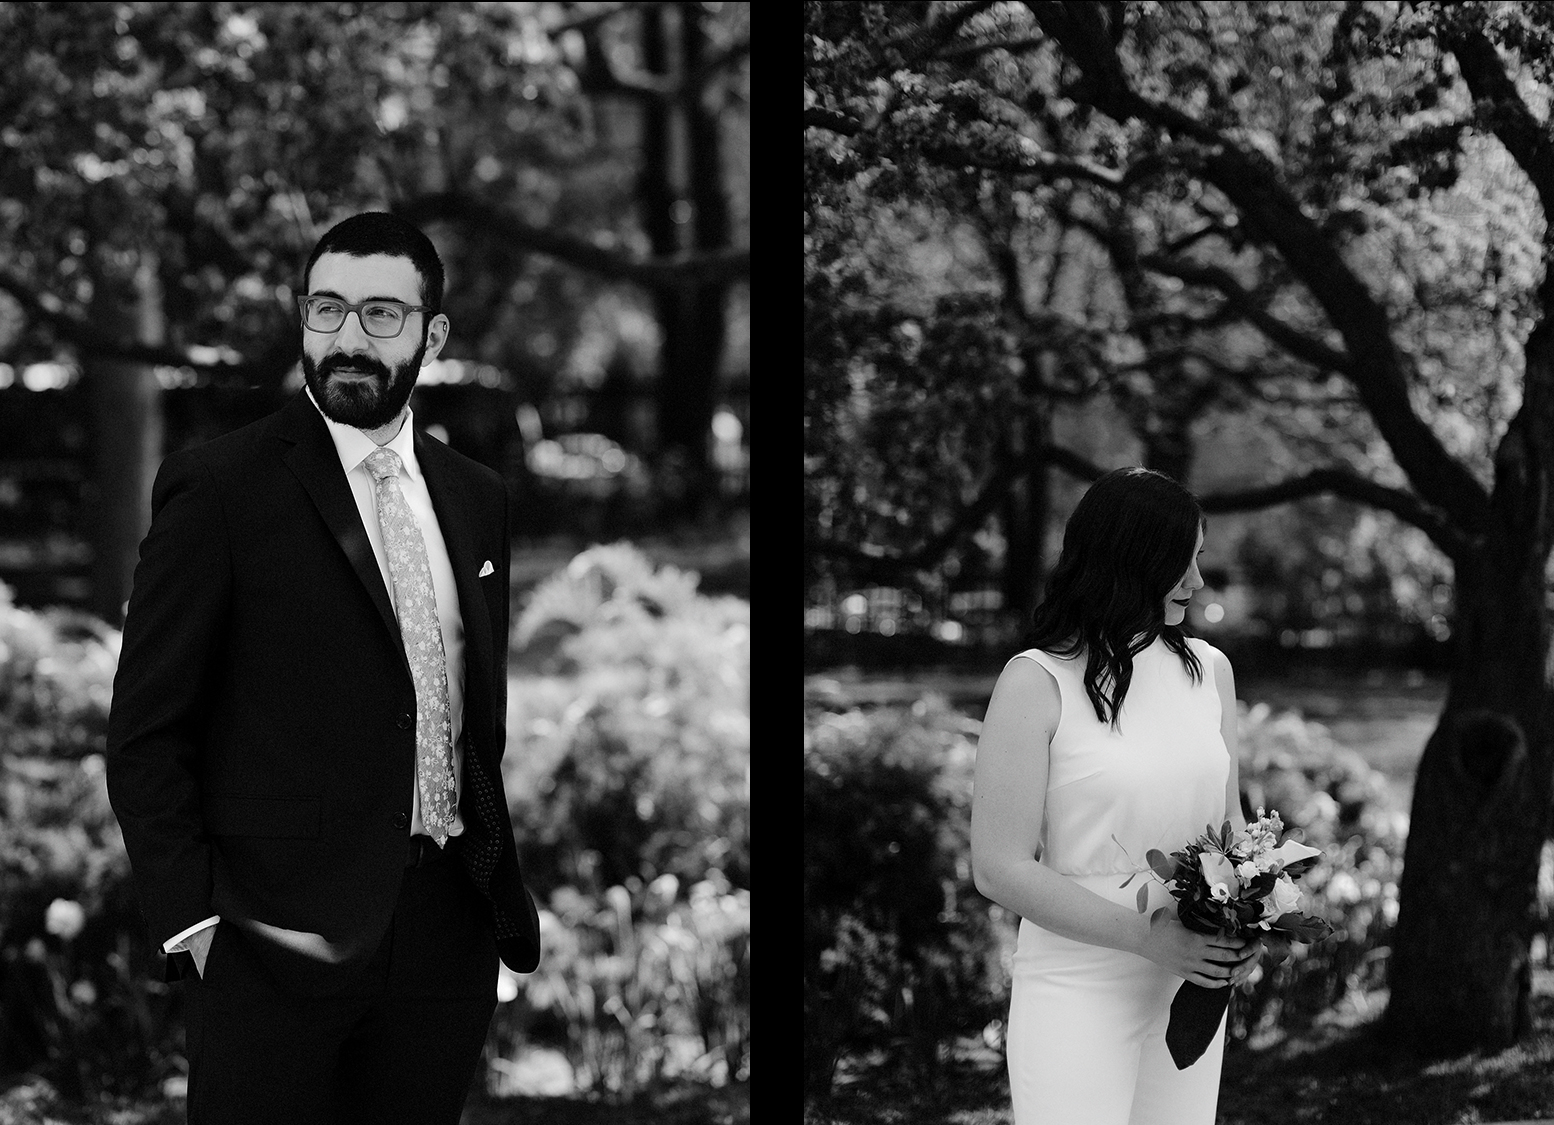 38-Toronto-City-Hall-Elopement-Osgoode-Hall-Candid-Documentary-Toronto-Wedding-Photography-3B-Photography-39-spread.jpg